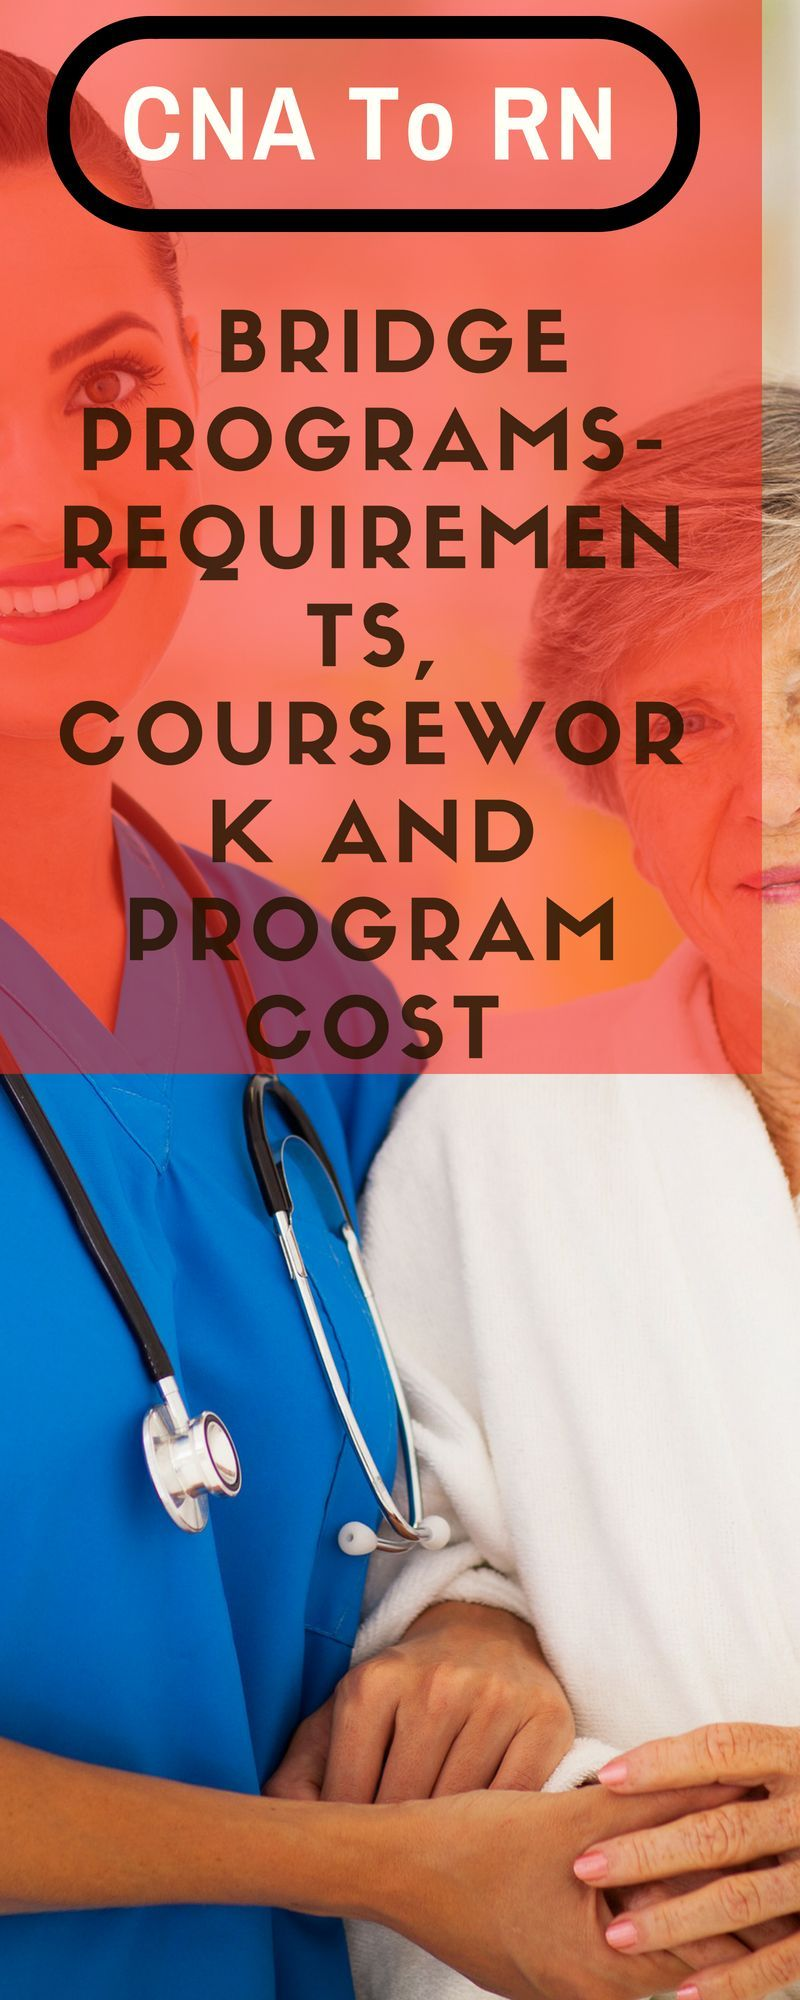 Cna To Rn Bridge Programs Requirements Coursework And Program Cost